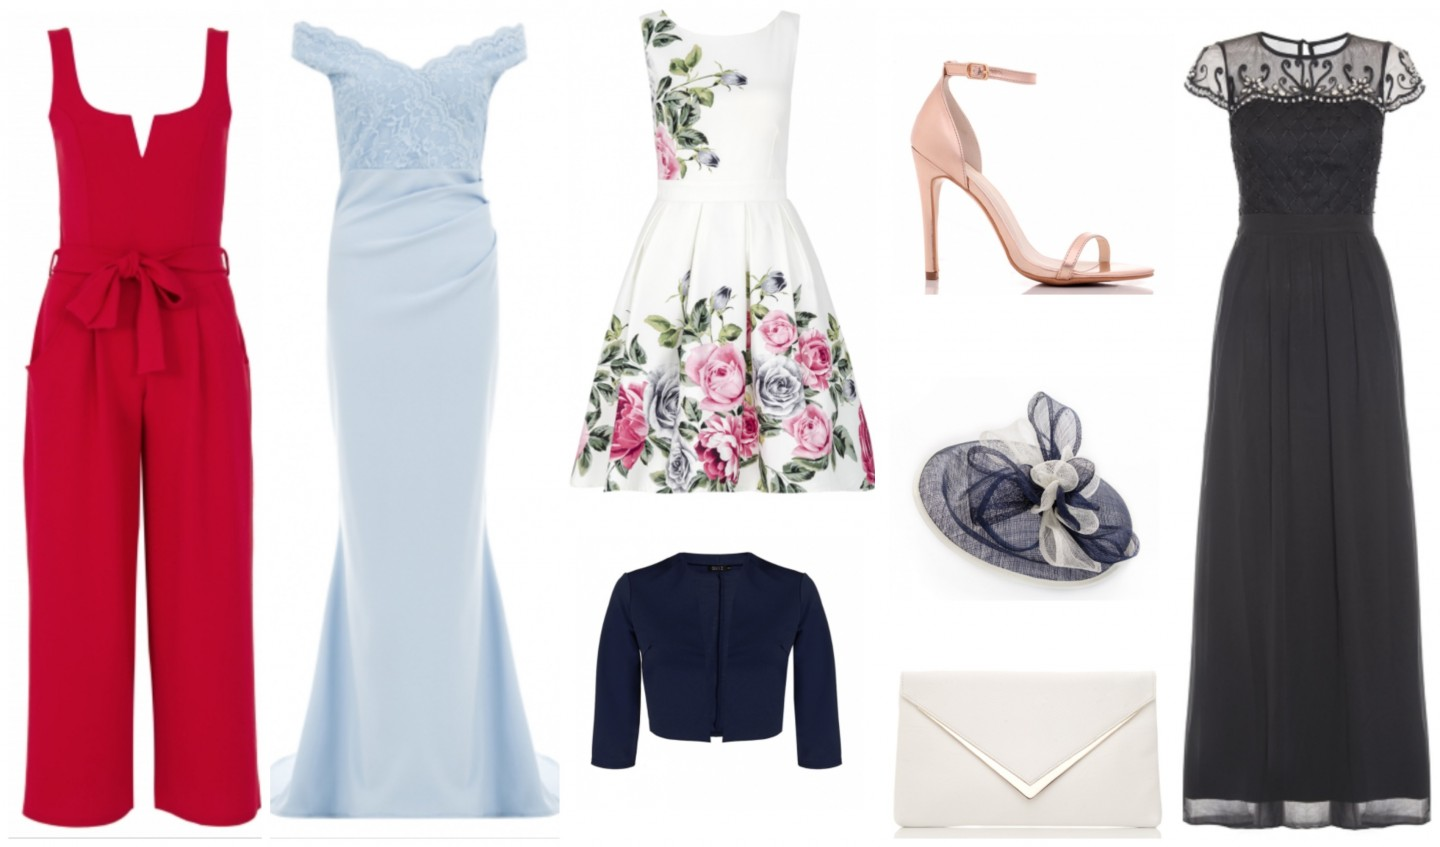 What To Wear as a Wedding Guest | Quiz Clothing Dress Review